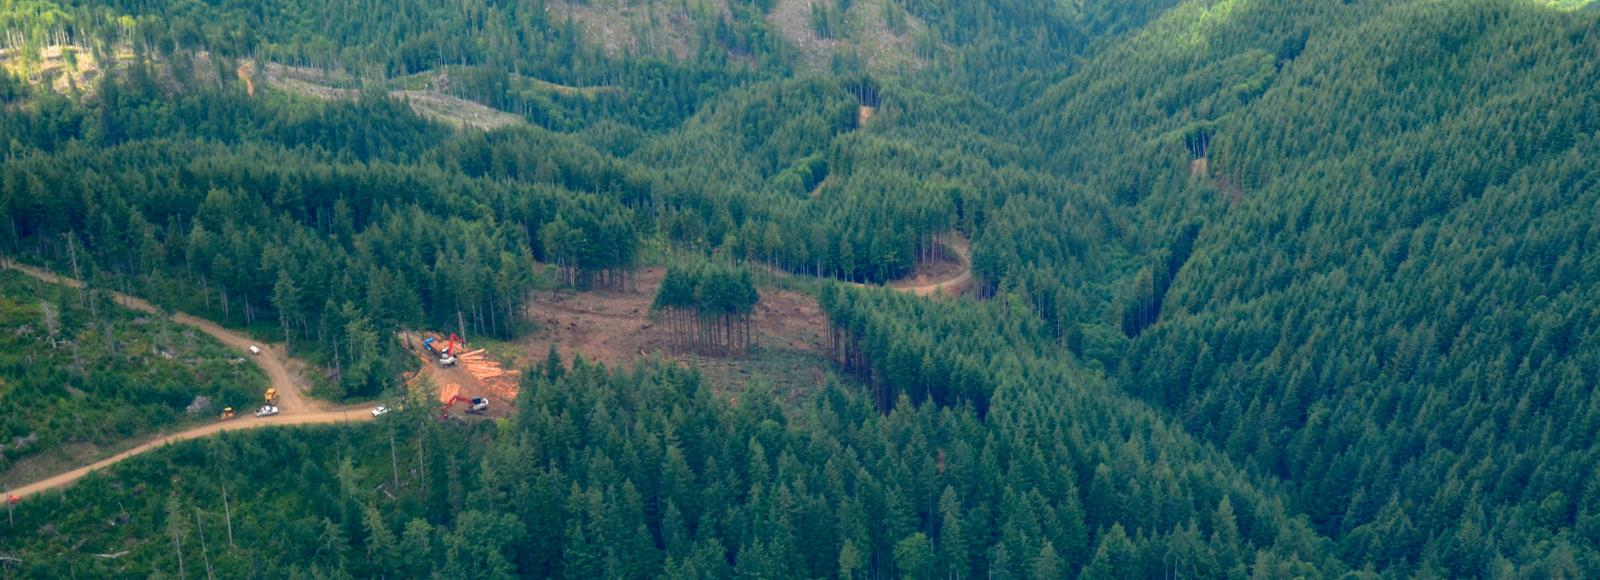 An aerial view of a small area of trees that has been harvested.